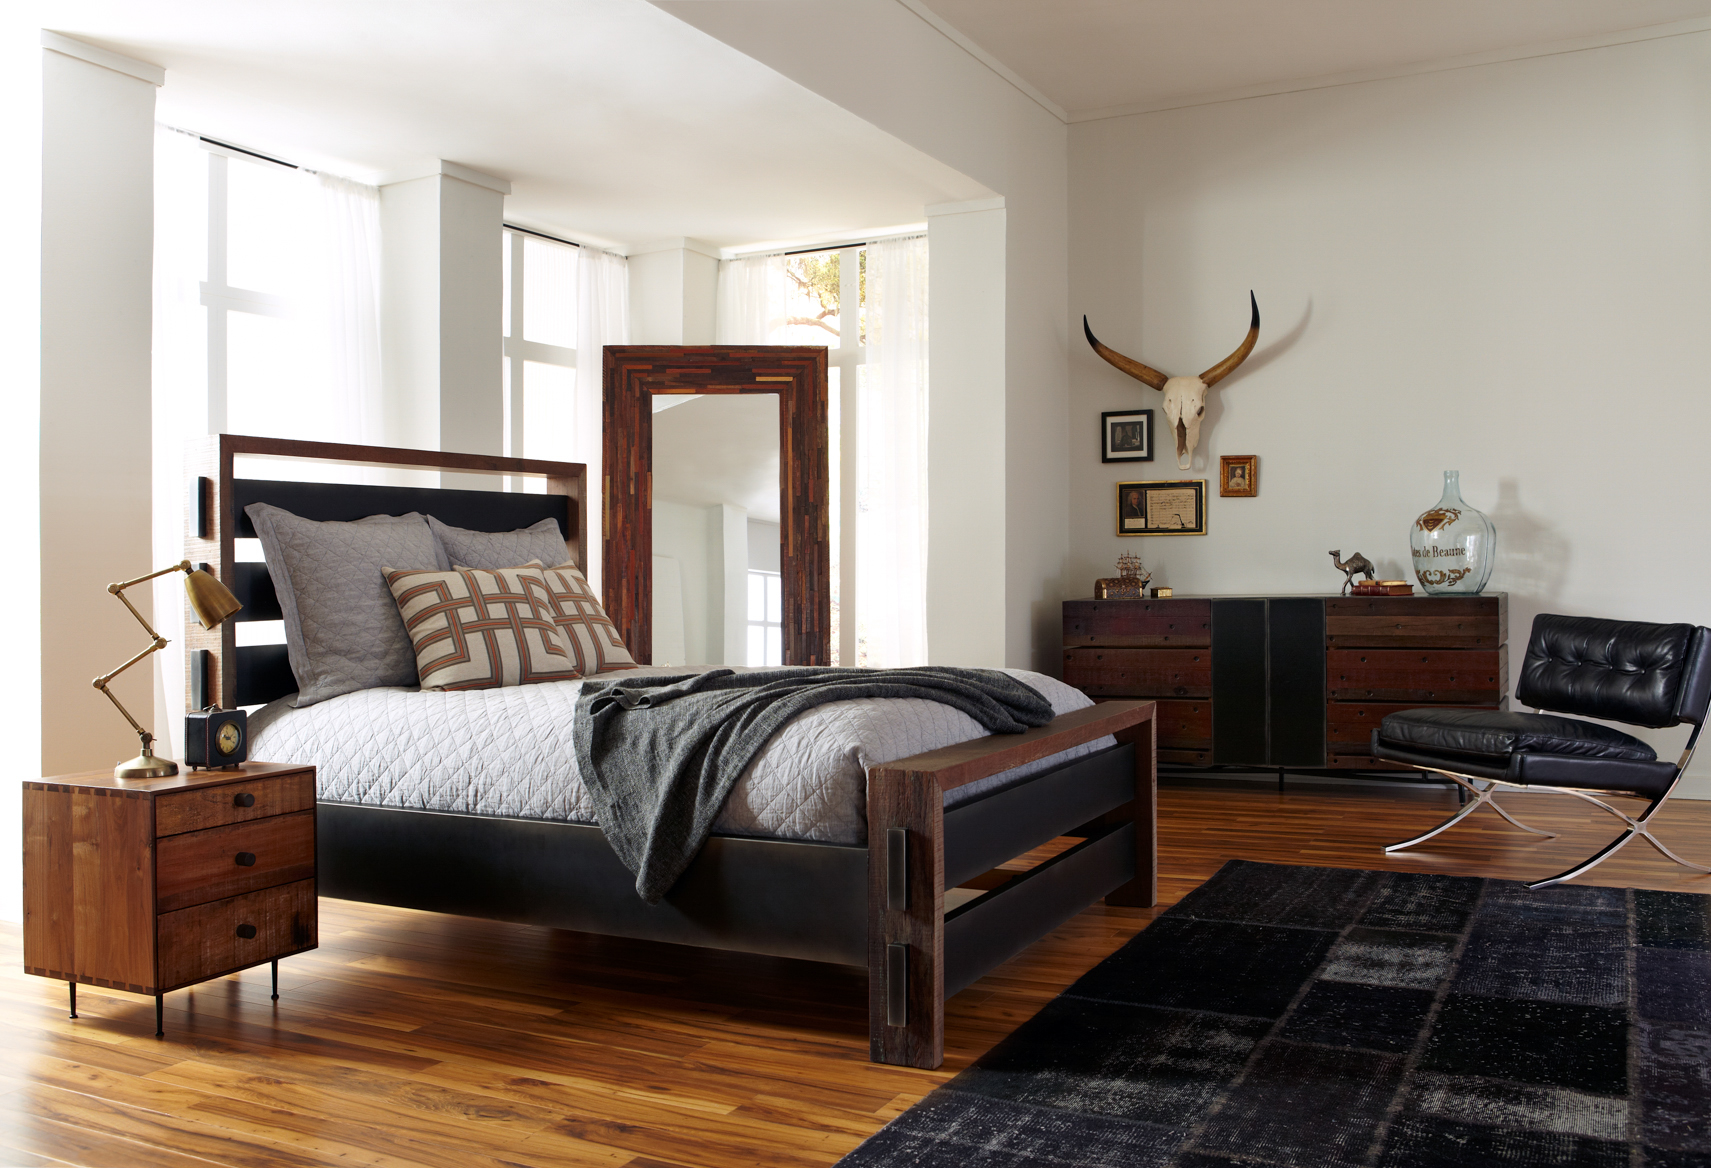 Four Hands Bedroom Furniture Suppliers